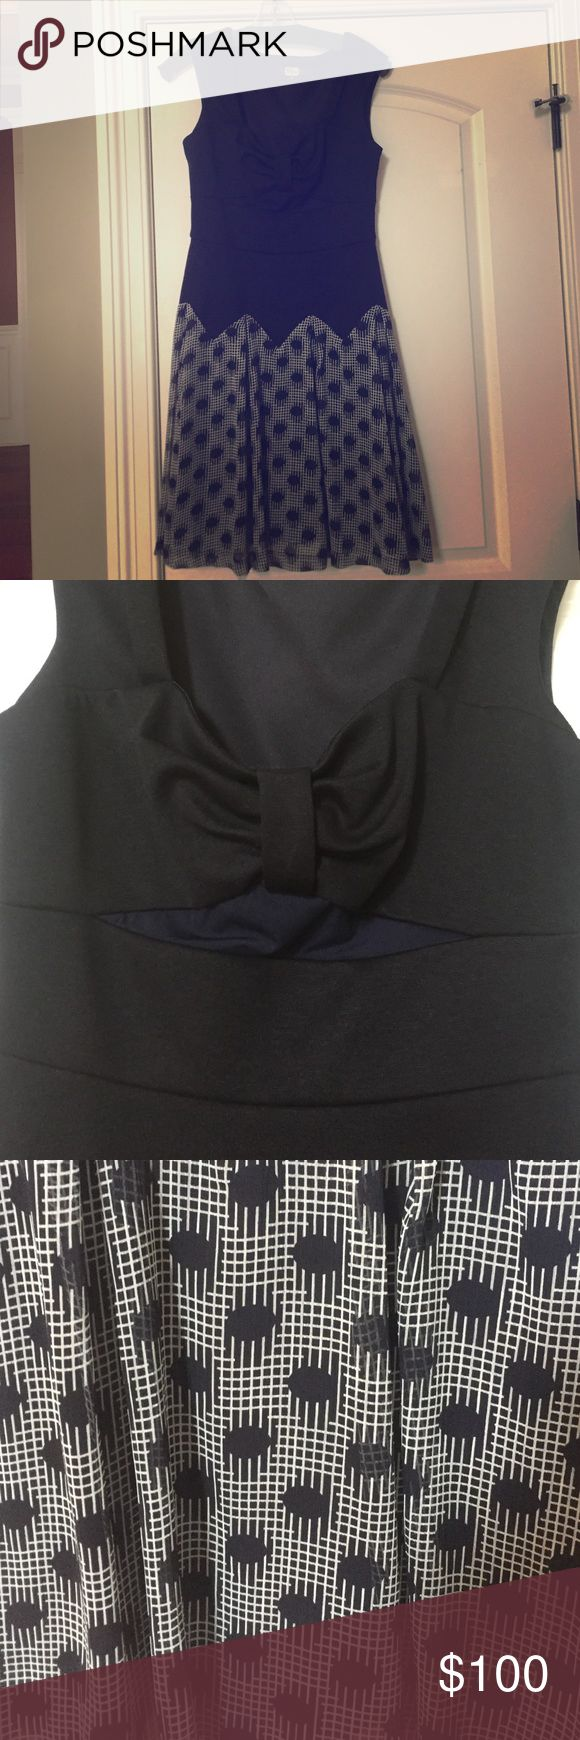 Stunning Eva Franco cut out dress sz 8 I purchased this gorgeous dress and never wore it. It is an Eva Franco. It is a size 8. There is a very cute cut out under the chest area which gives the dress a little something extra. Eva Franco Dresses